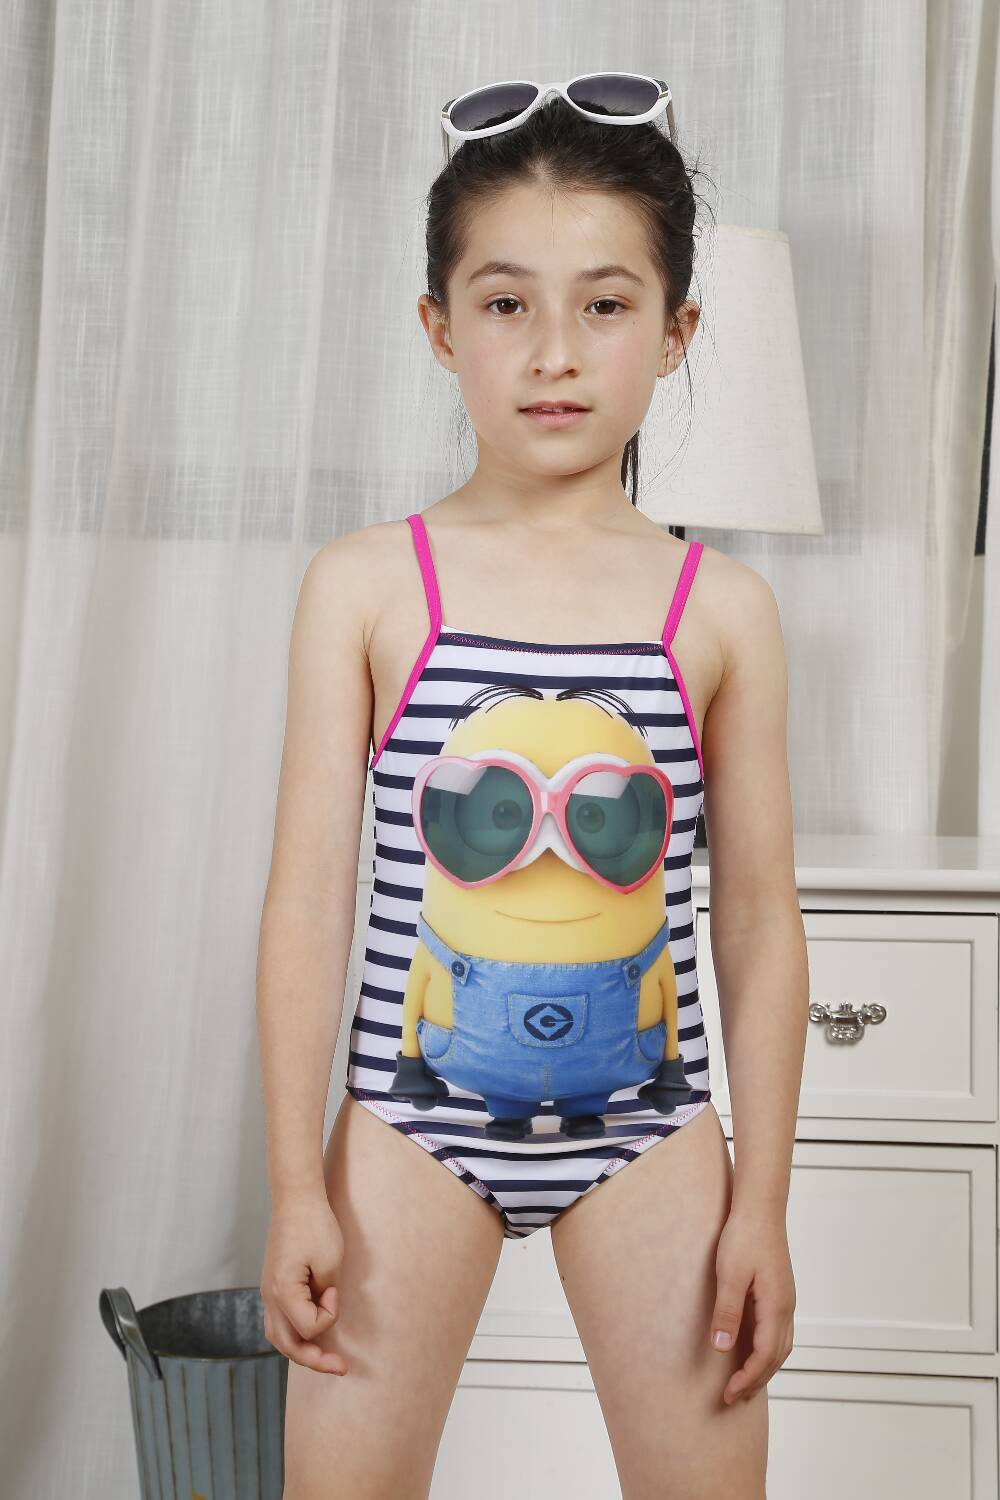 Minions Girl bathing suit